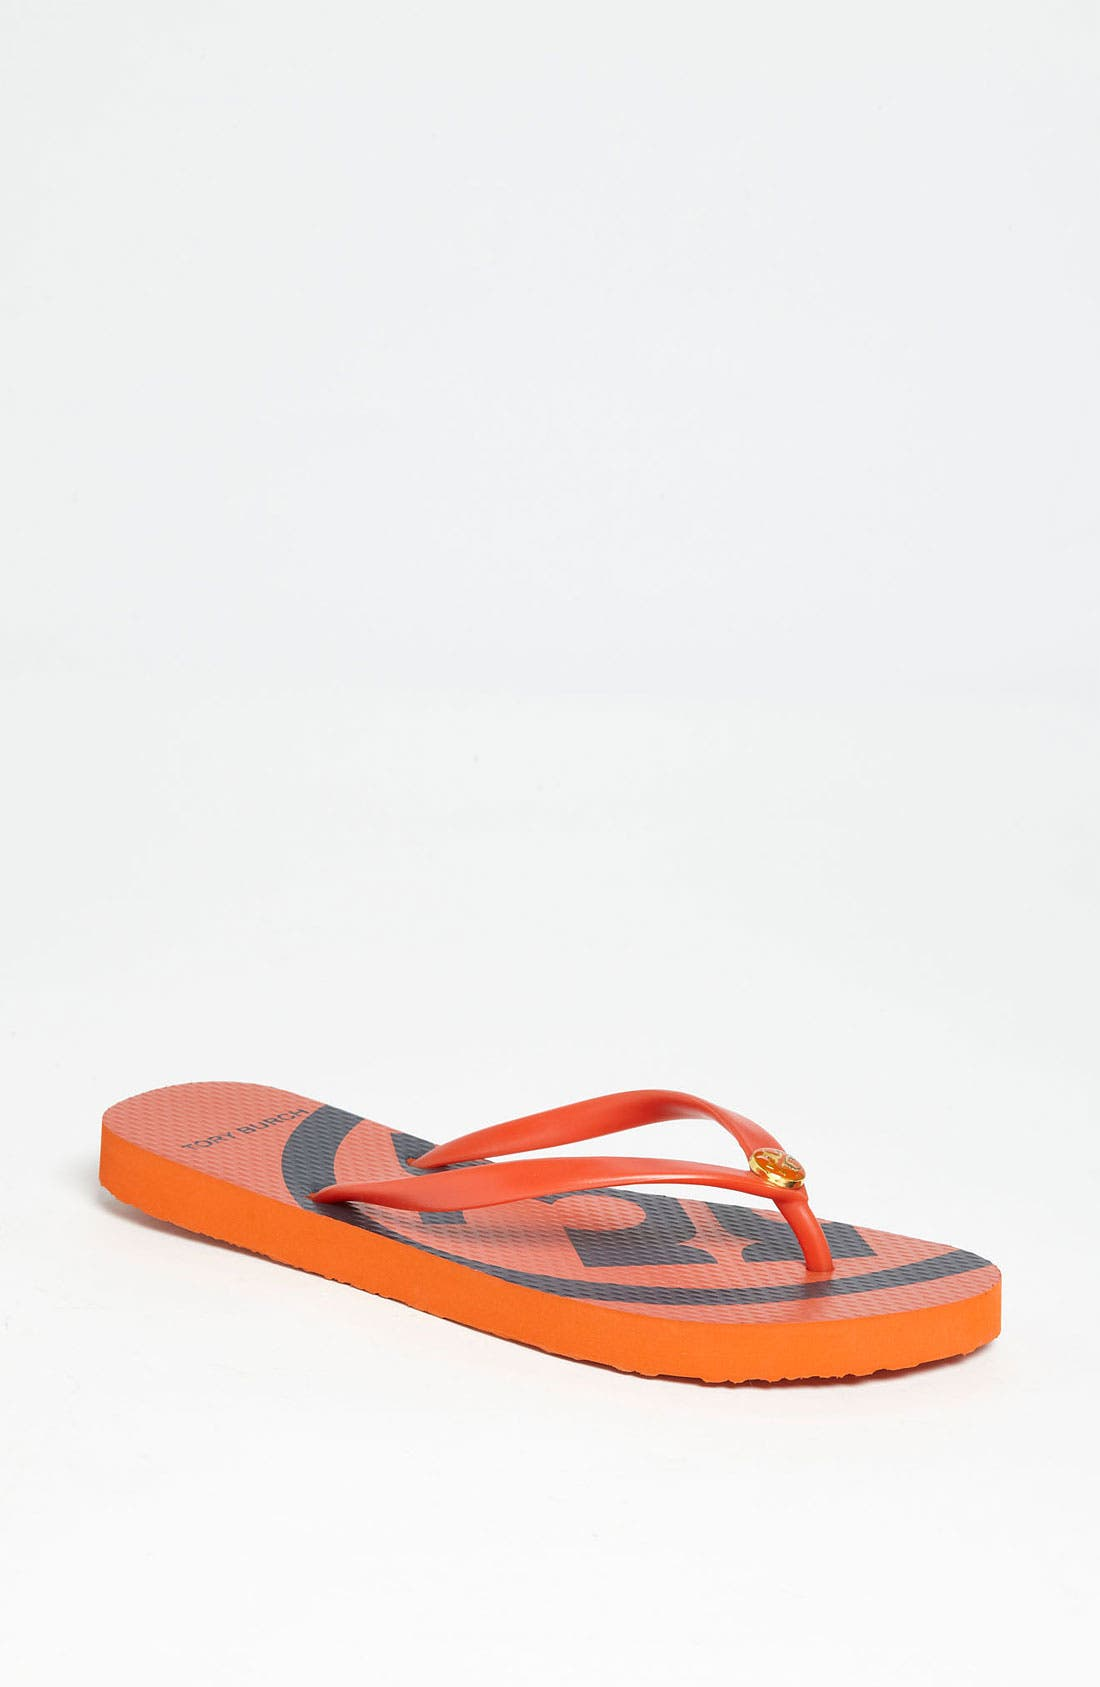 Alternate Image 1 Selected - Tory Burch 'Emory' Flip Flop